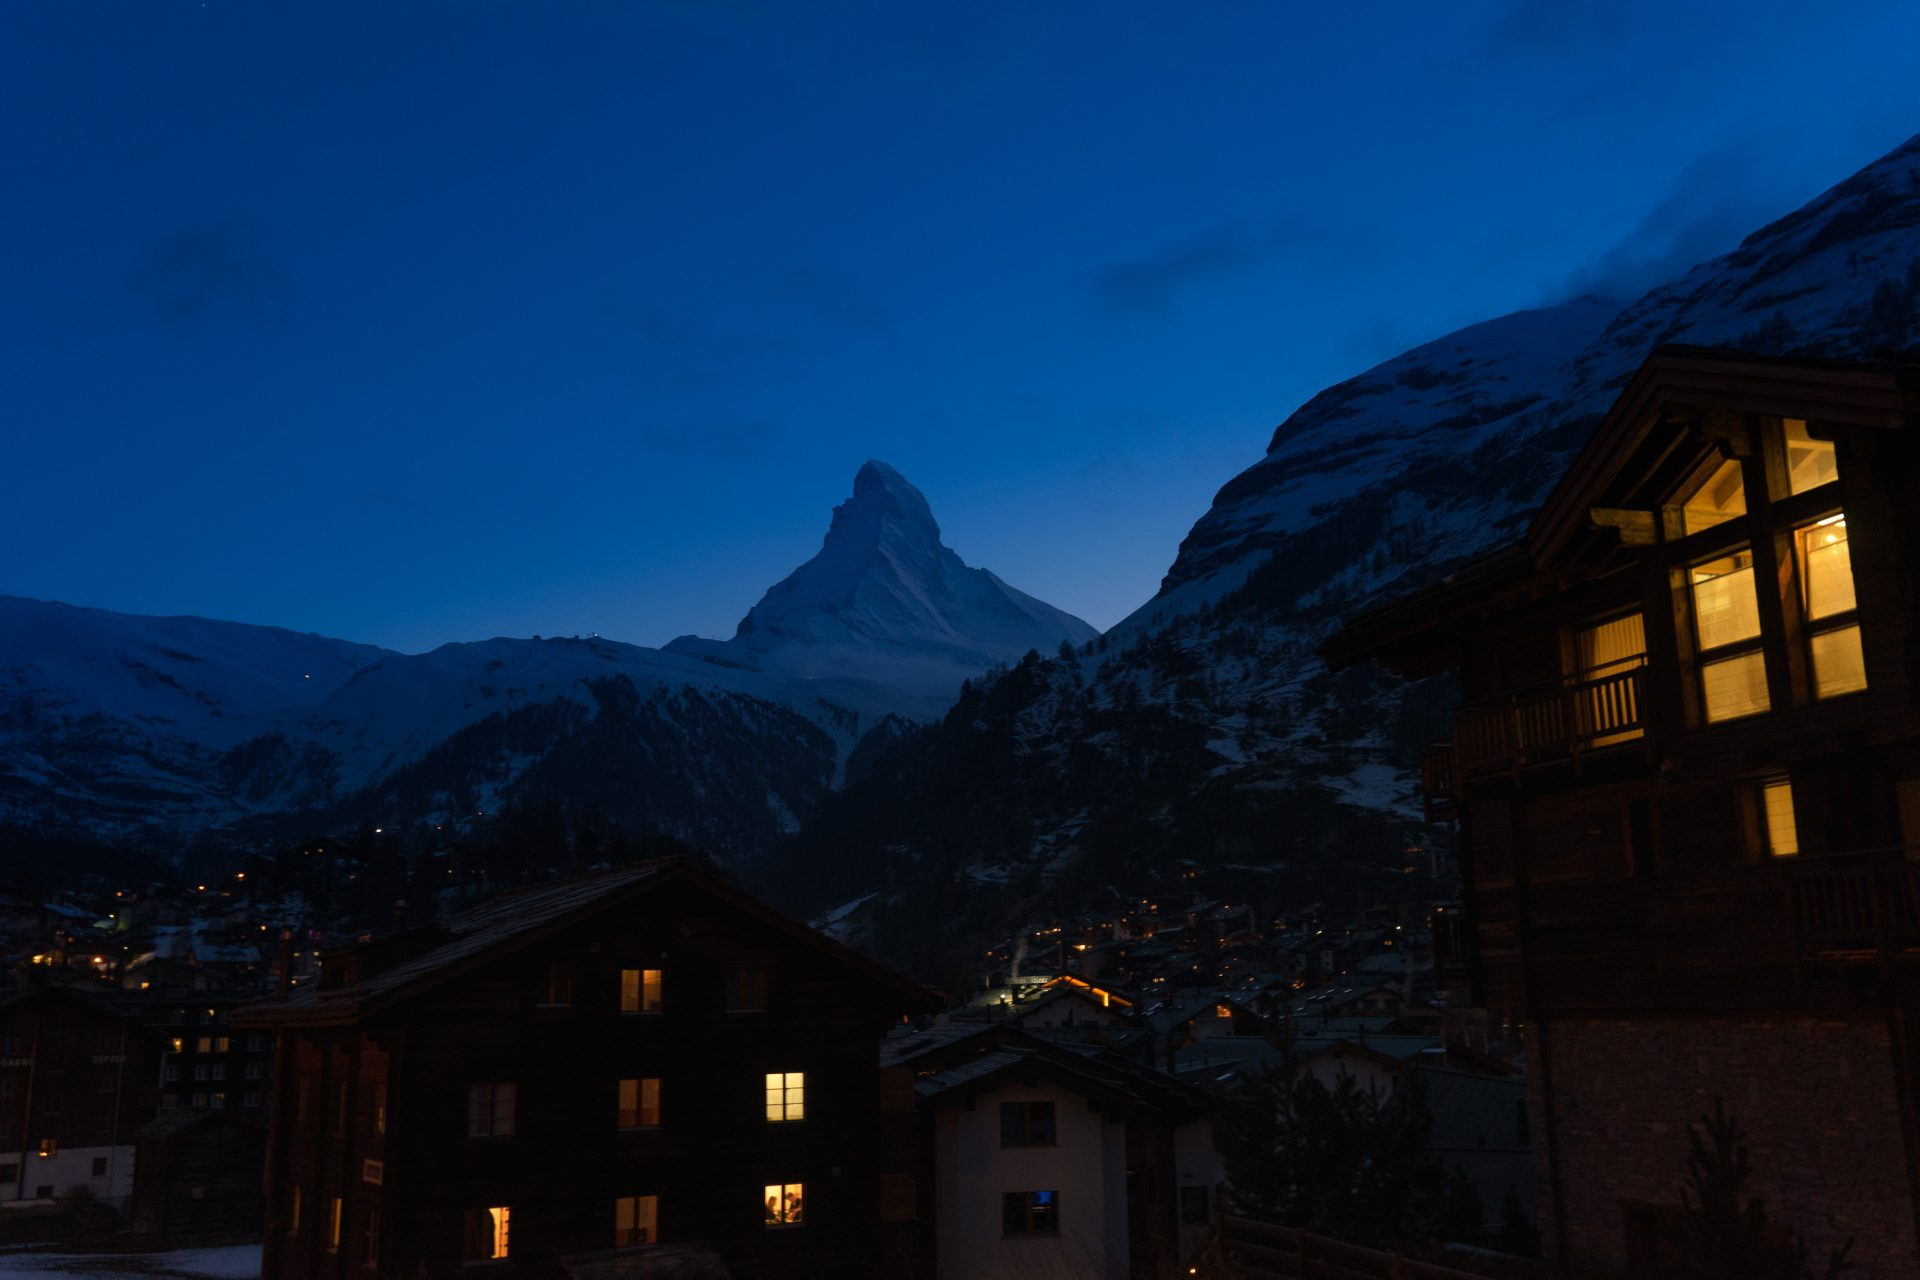 Matterhorn at Night – Switzerland